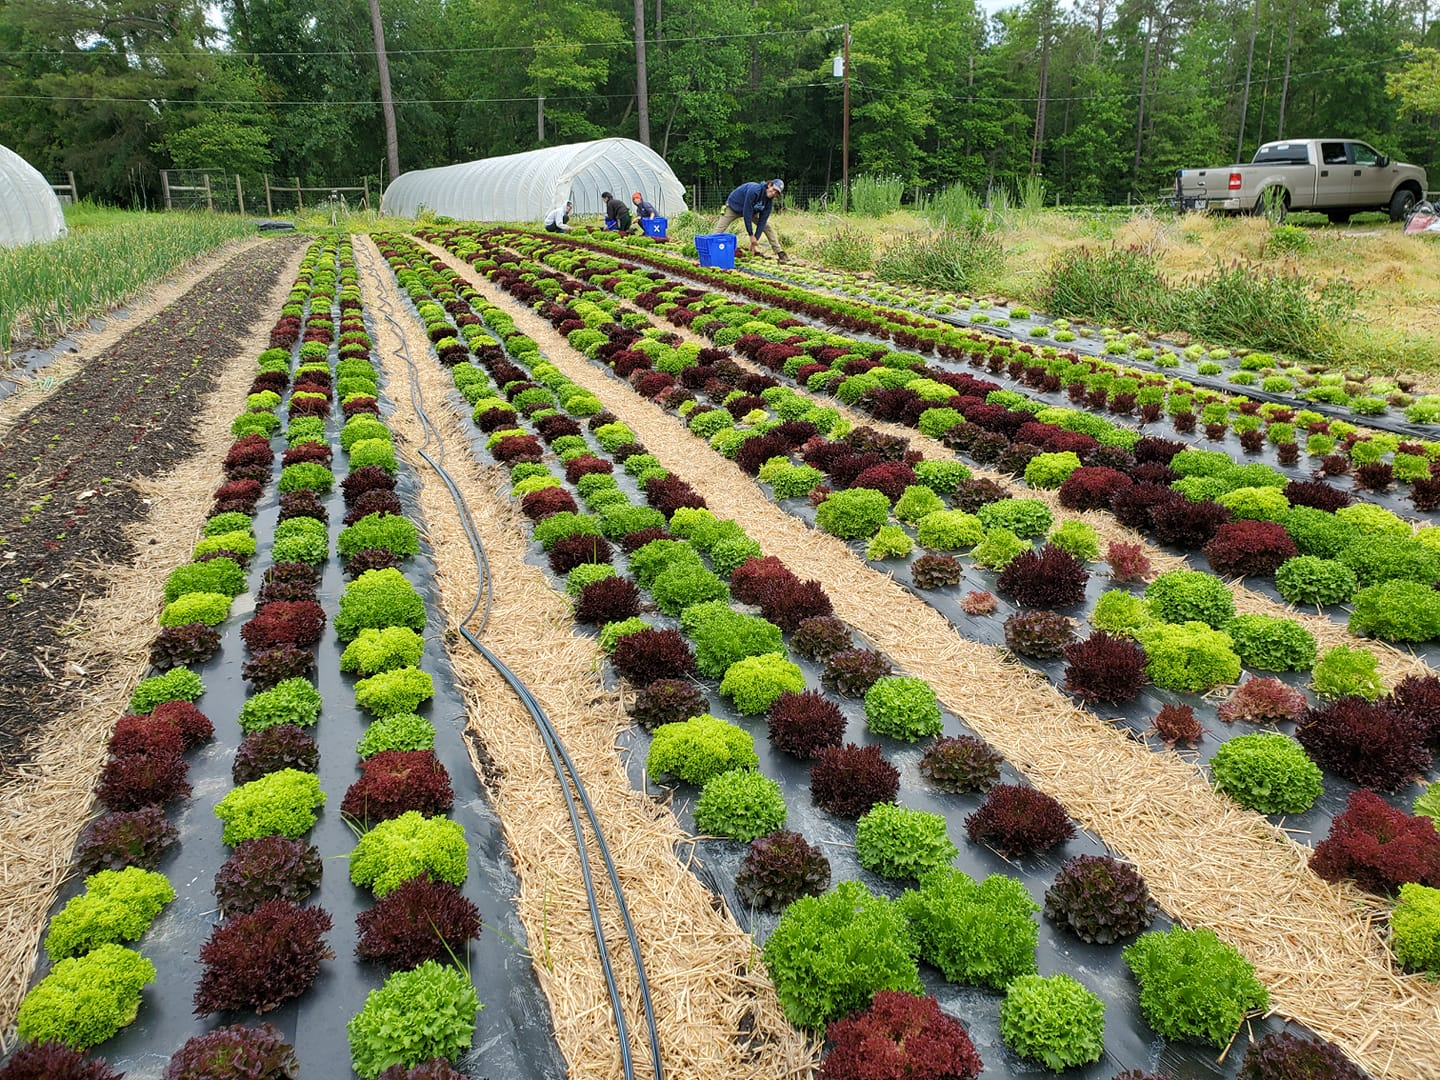 Farm Happenings for May 15, 2021